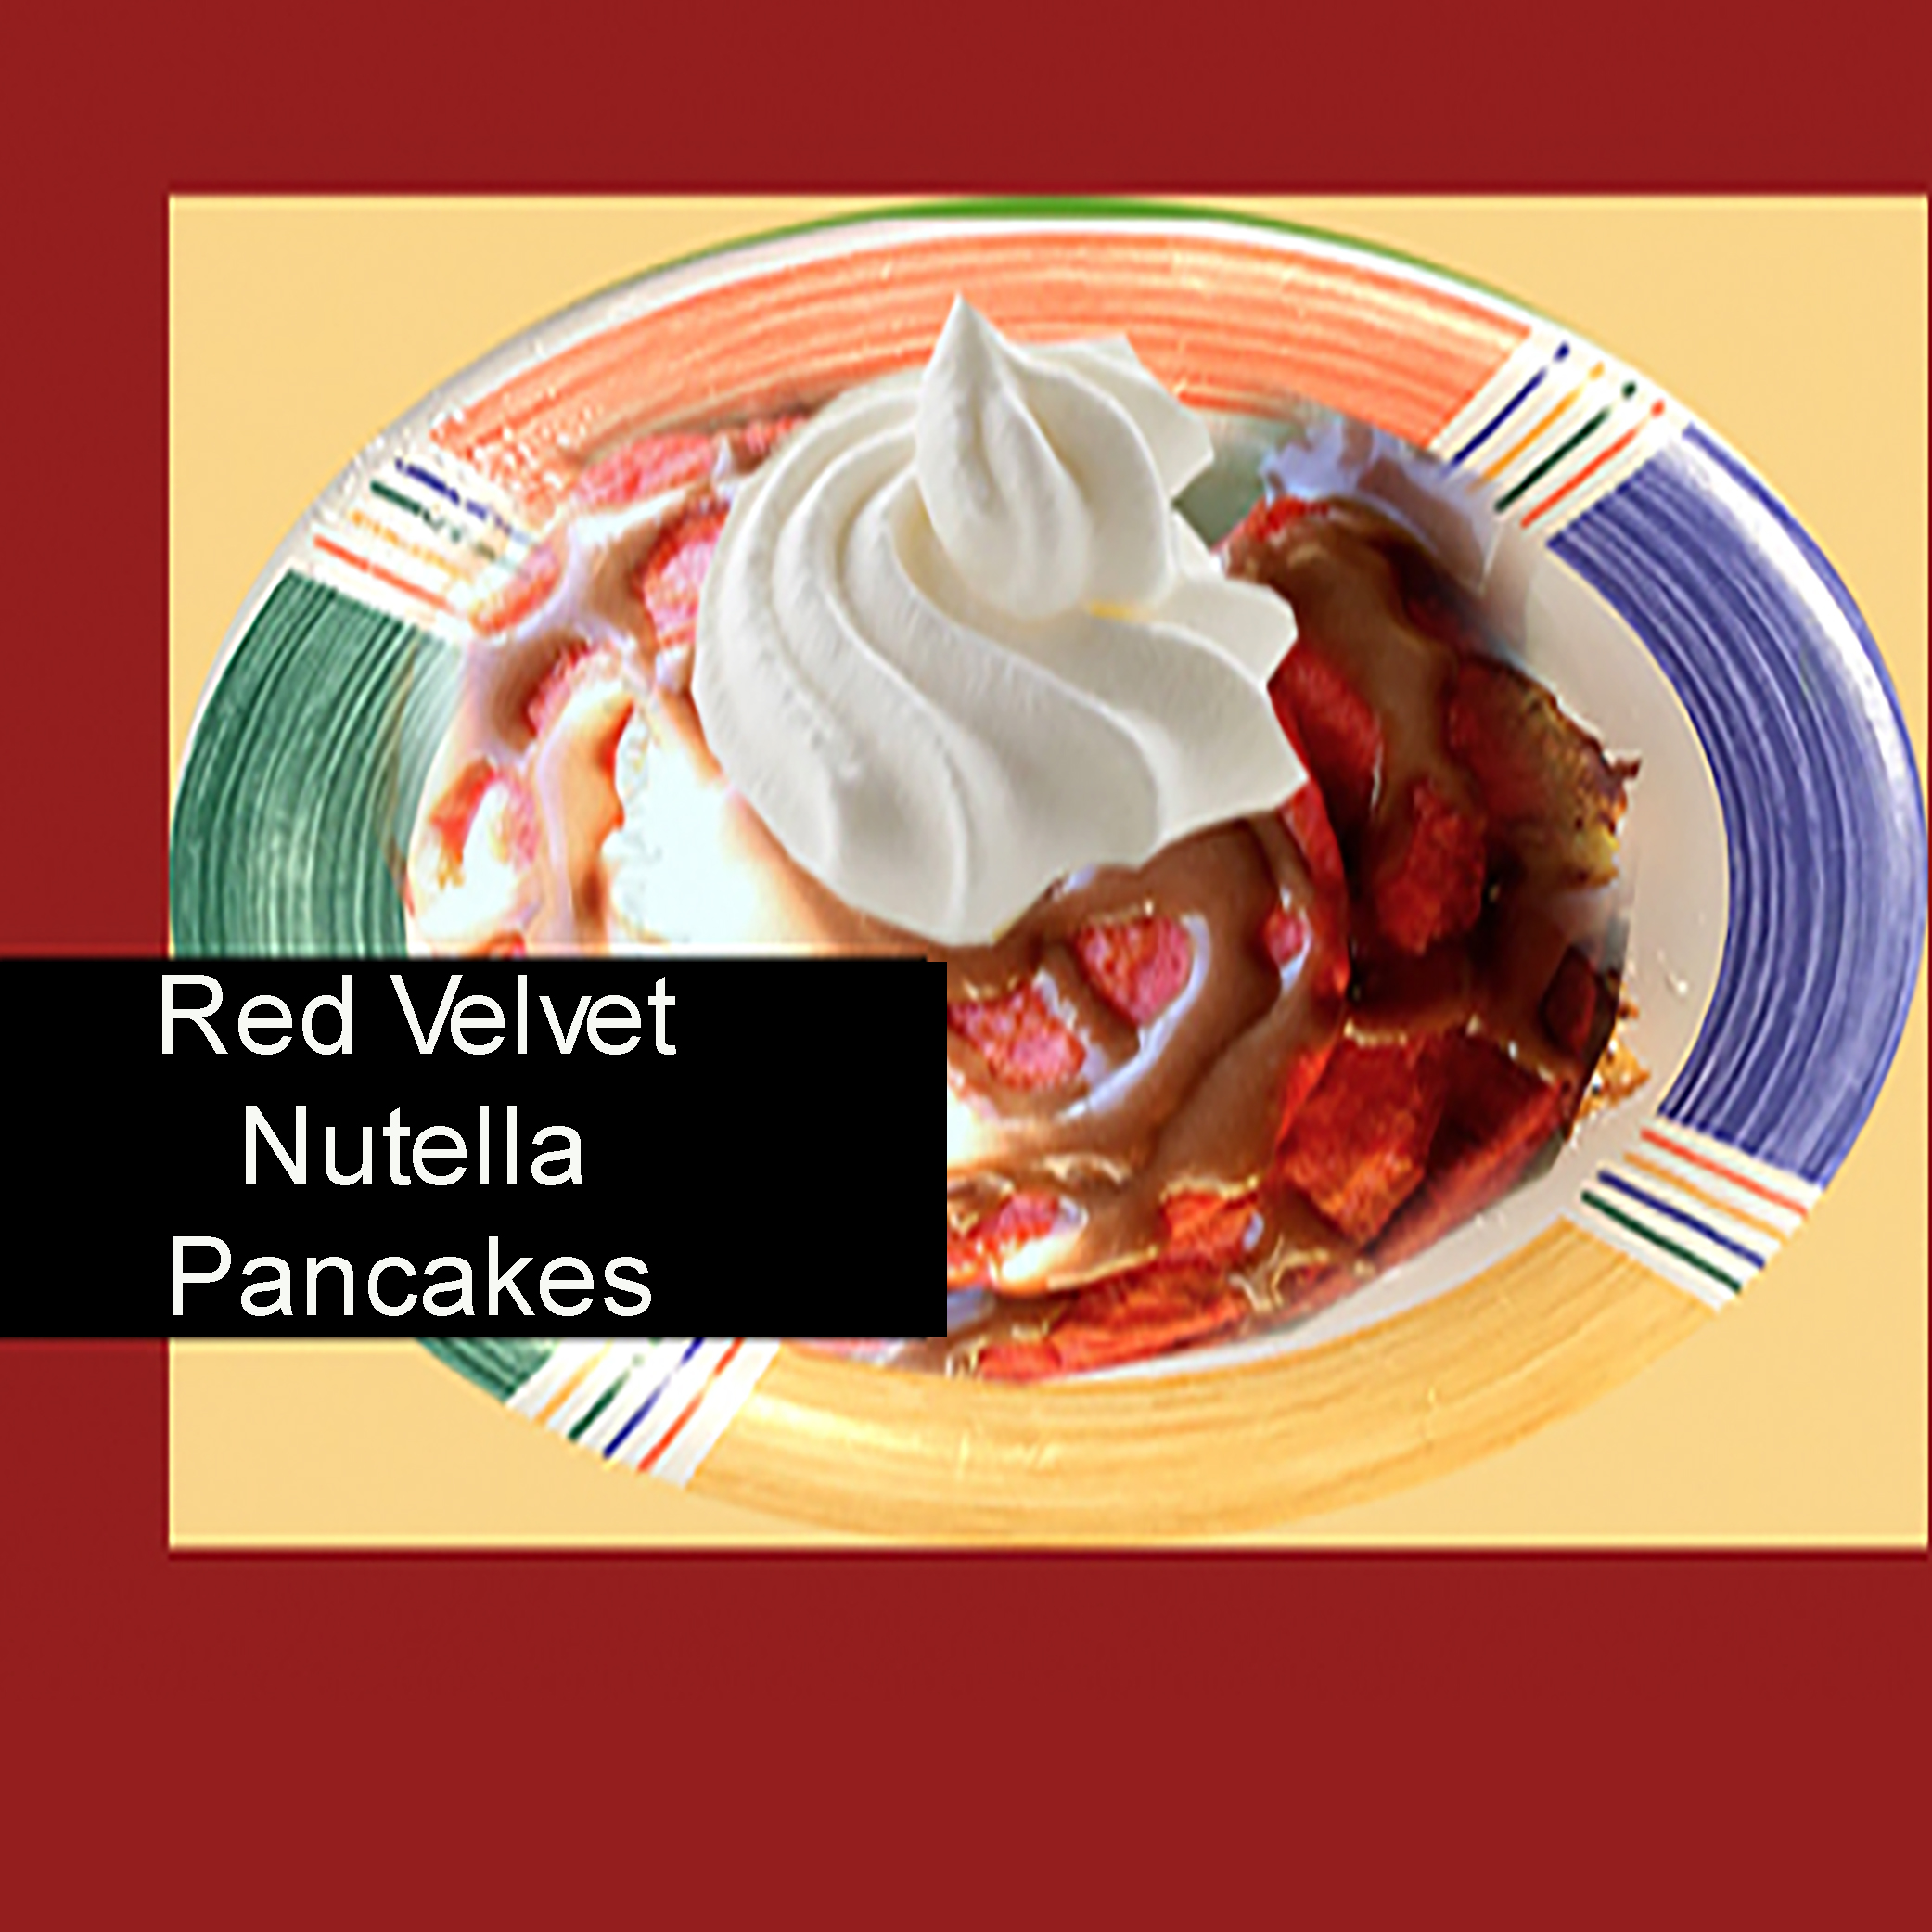 red velvet nutella pancakes